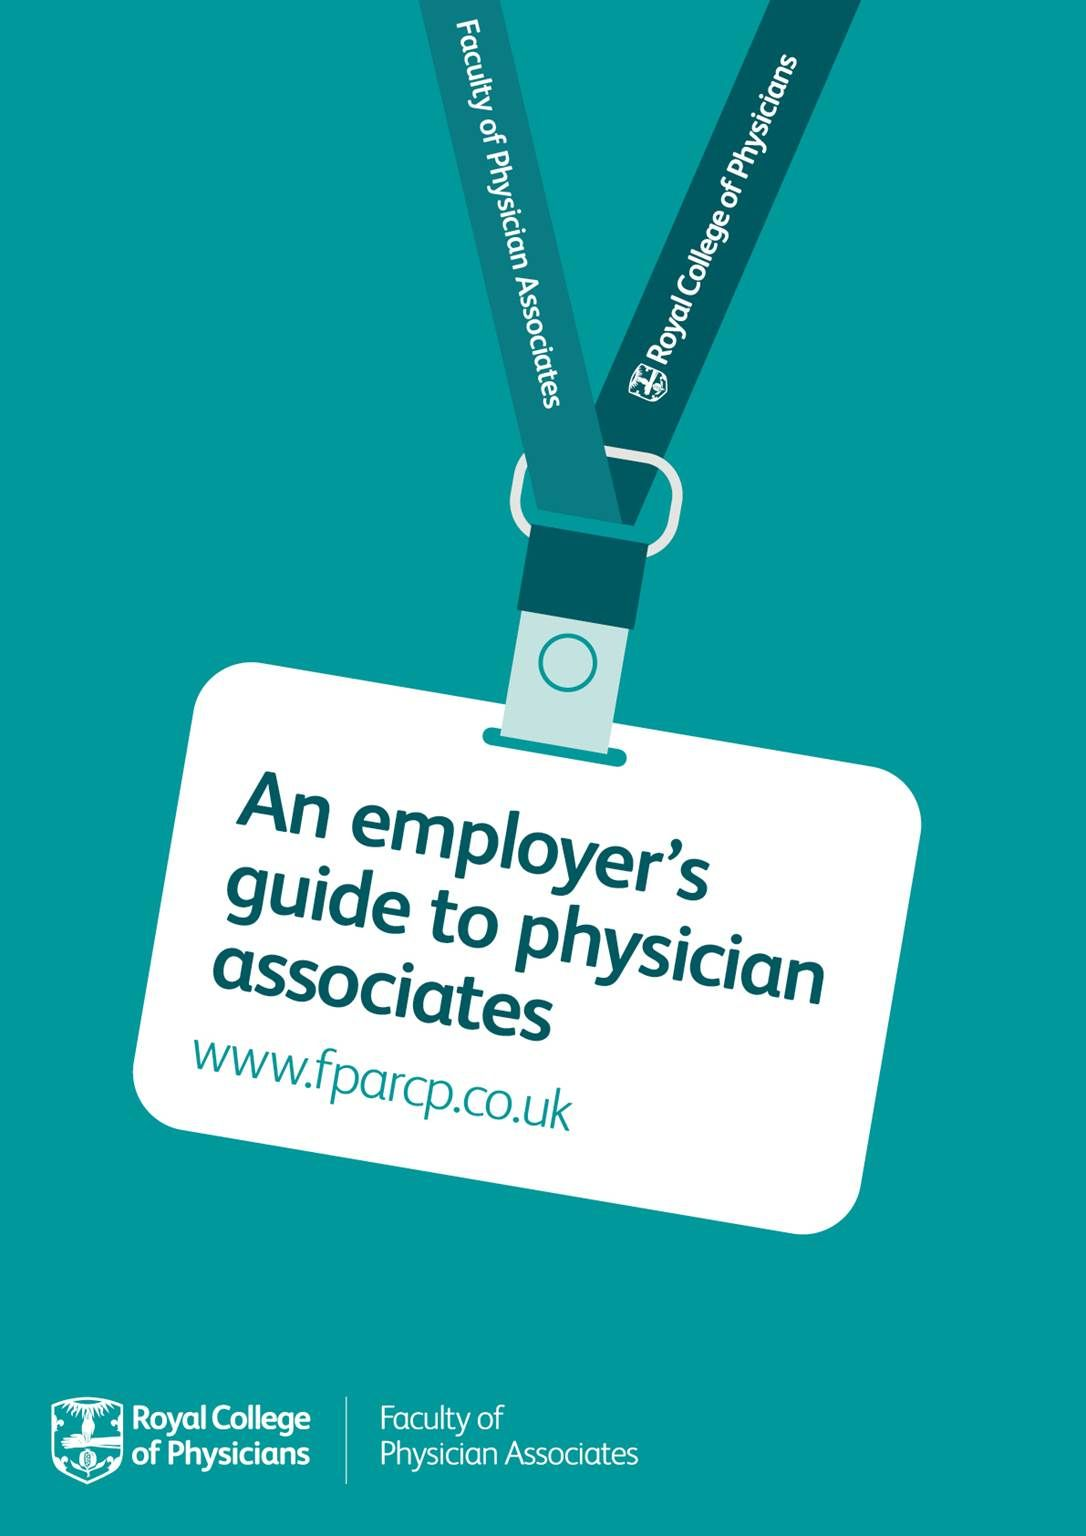 An employer's guide to physician associates